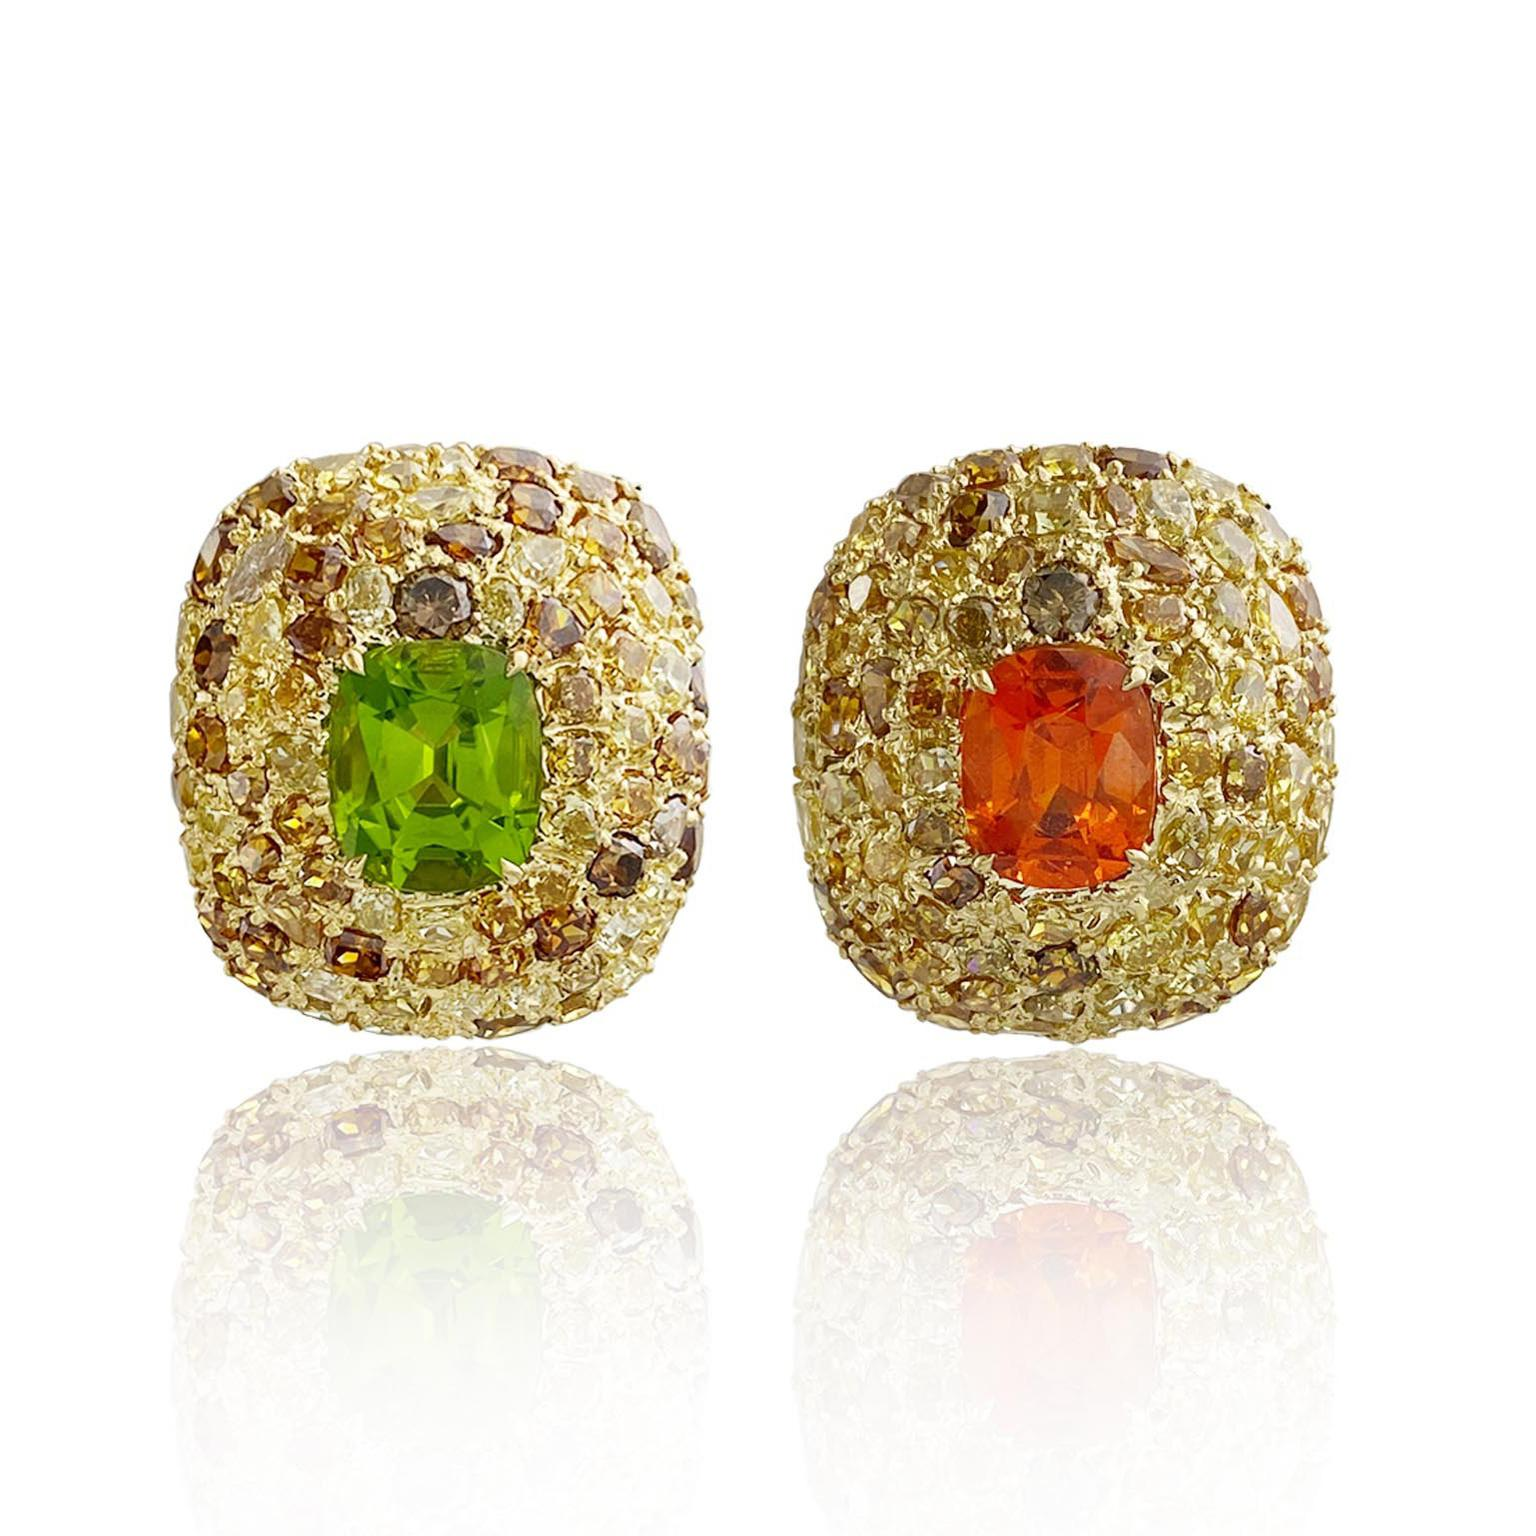 Peridot and garnet earrings 010352 from Margot McKinney